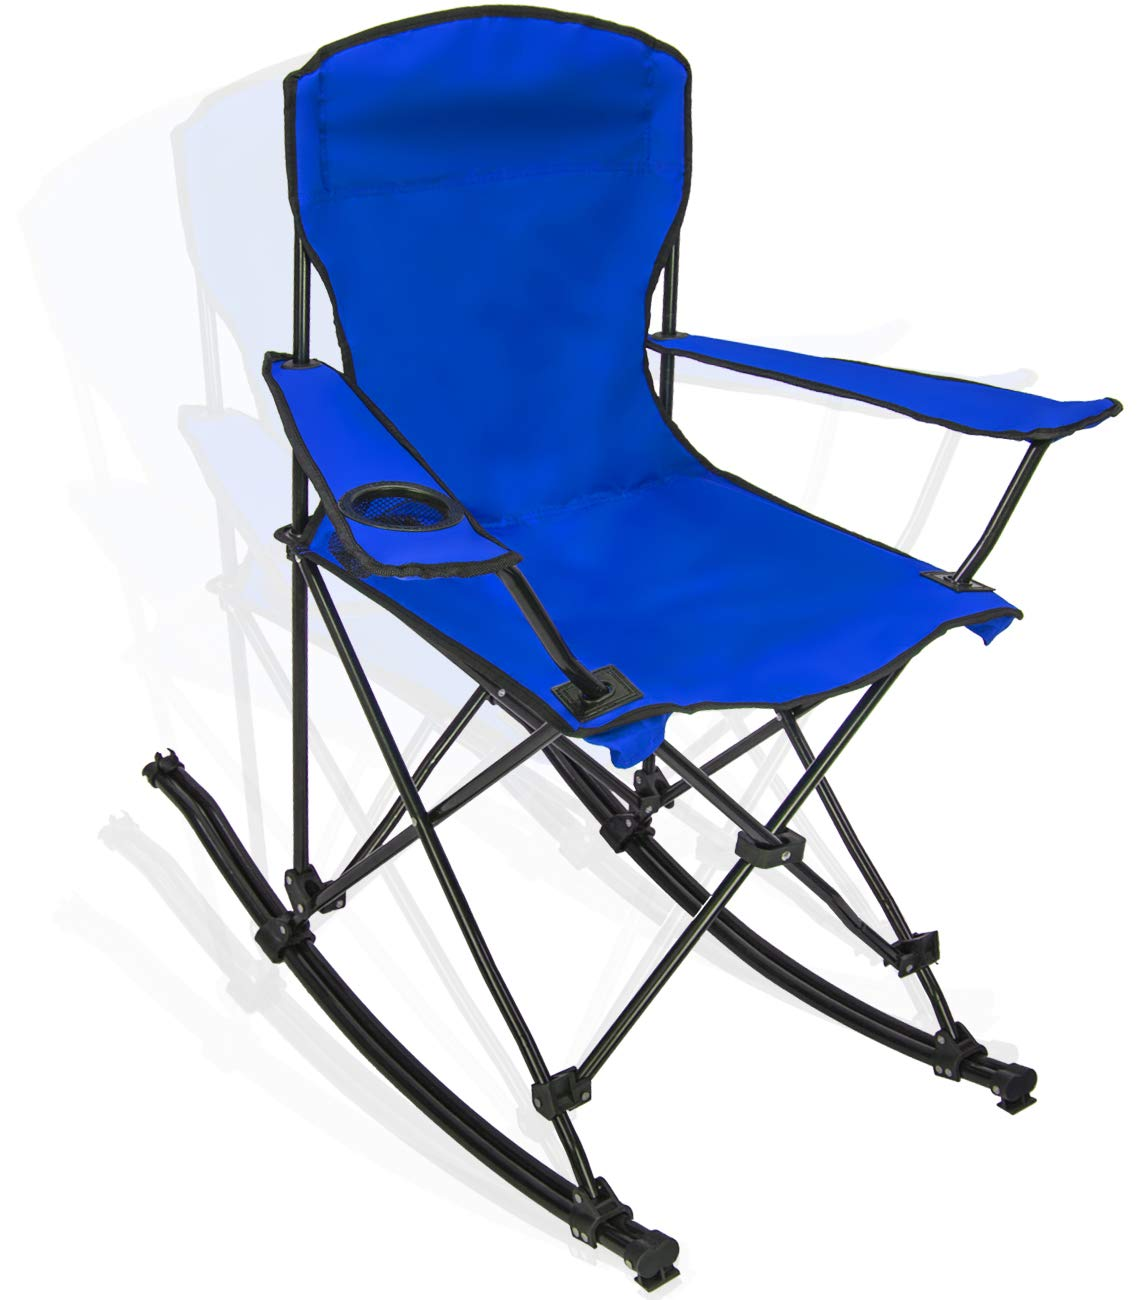 Tremendous Sorbus Quad Rocking Chair With Cup Holder Cooler Foldable Frame Portable Carry Bag Recliner Chair Great Outdoor Chair For Camping Sporting Events Machost Co Dining Chair Design Ideas Machostcouk